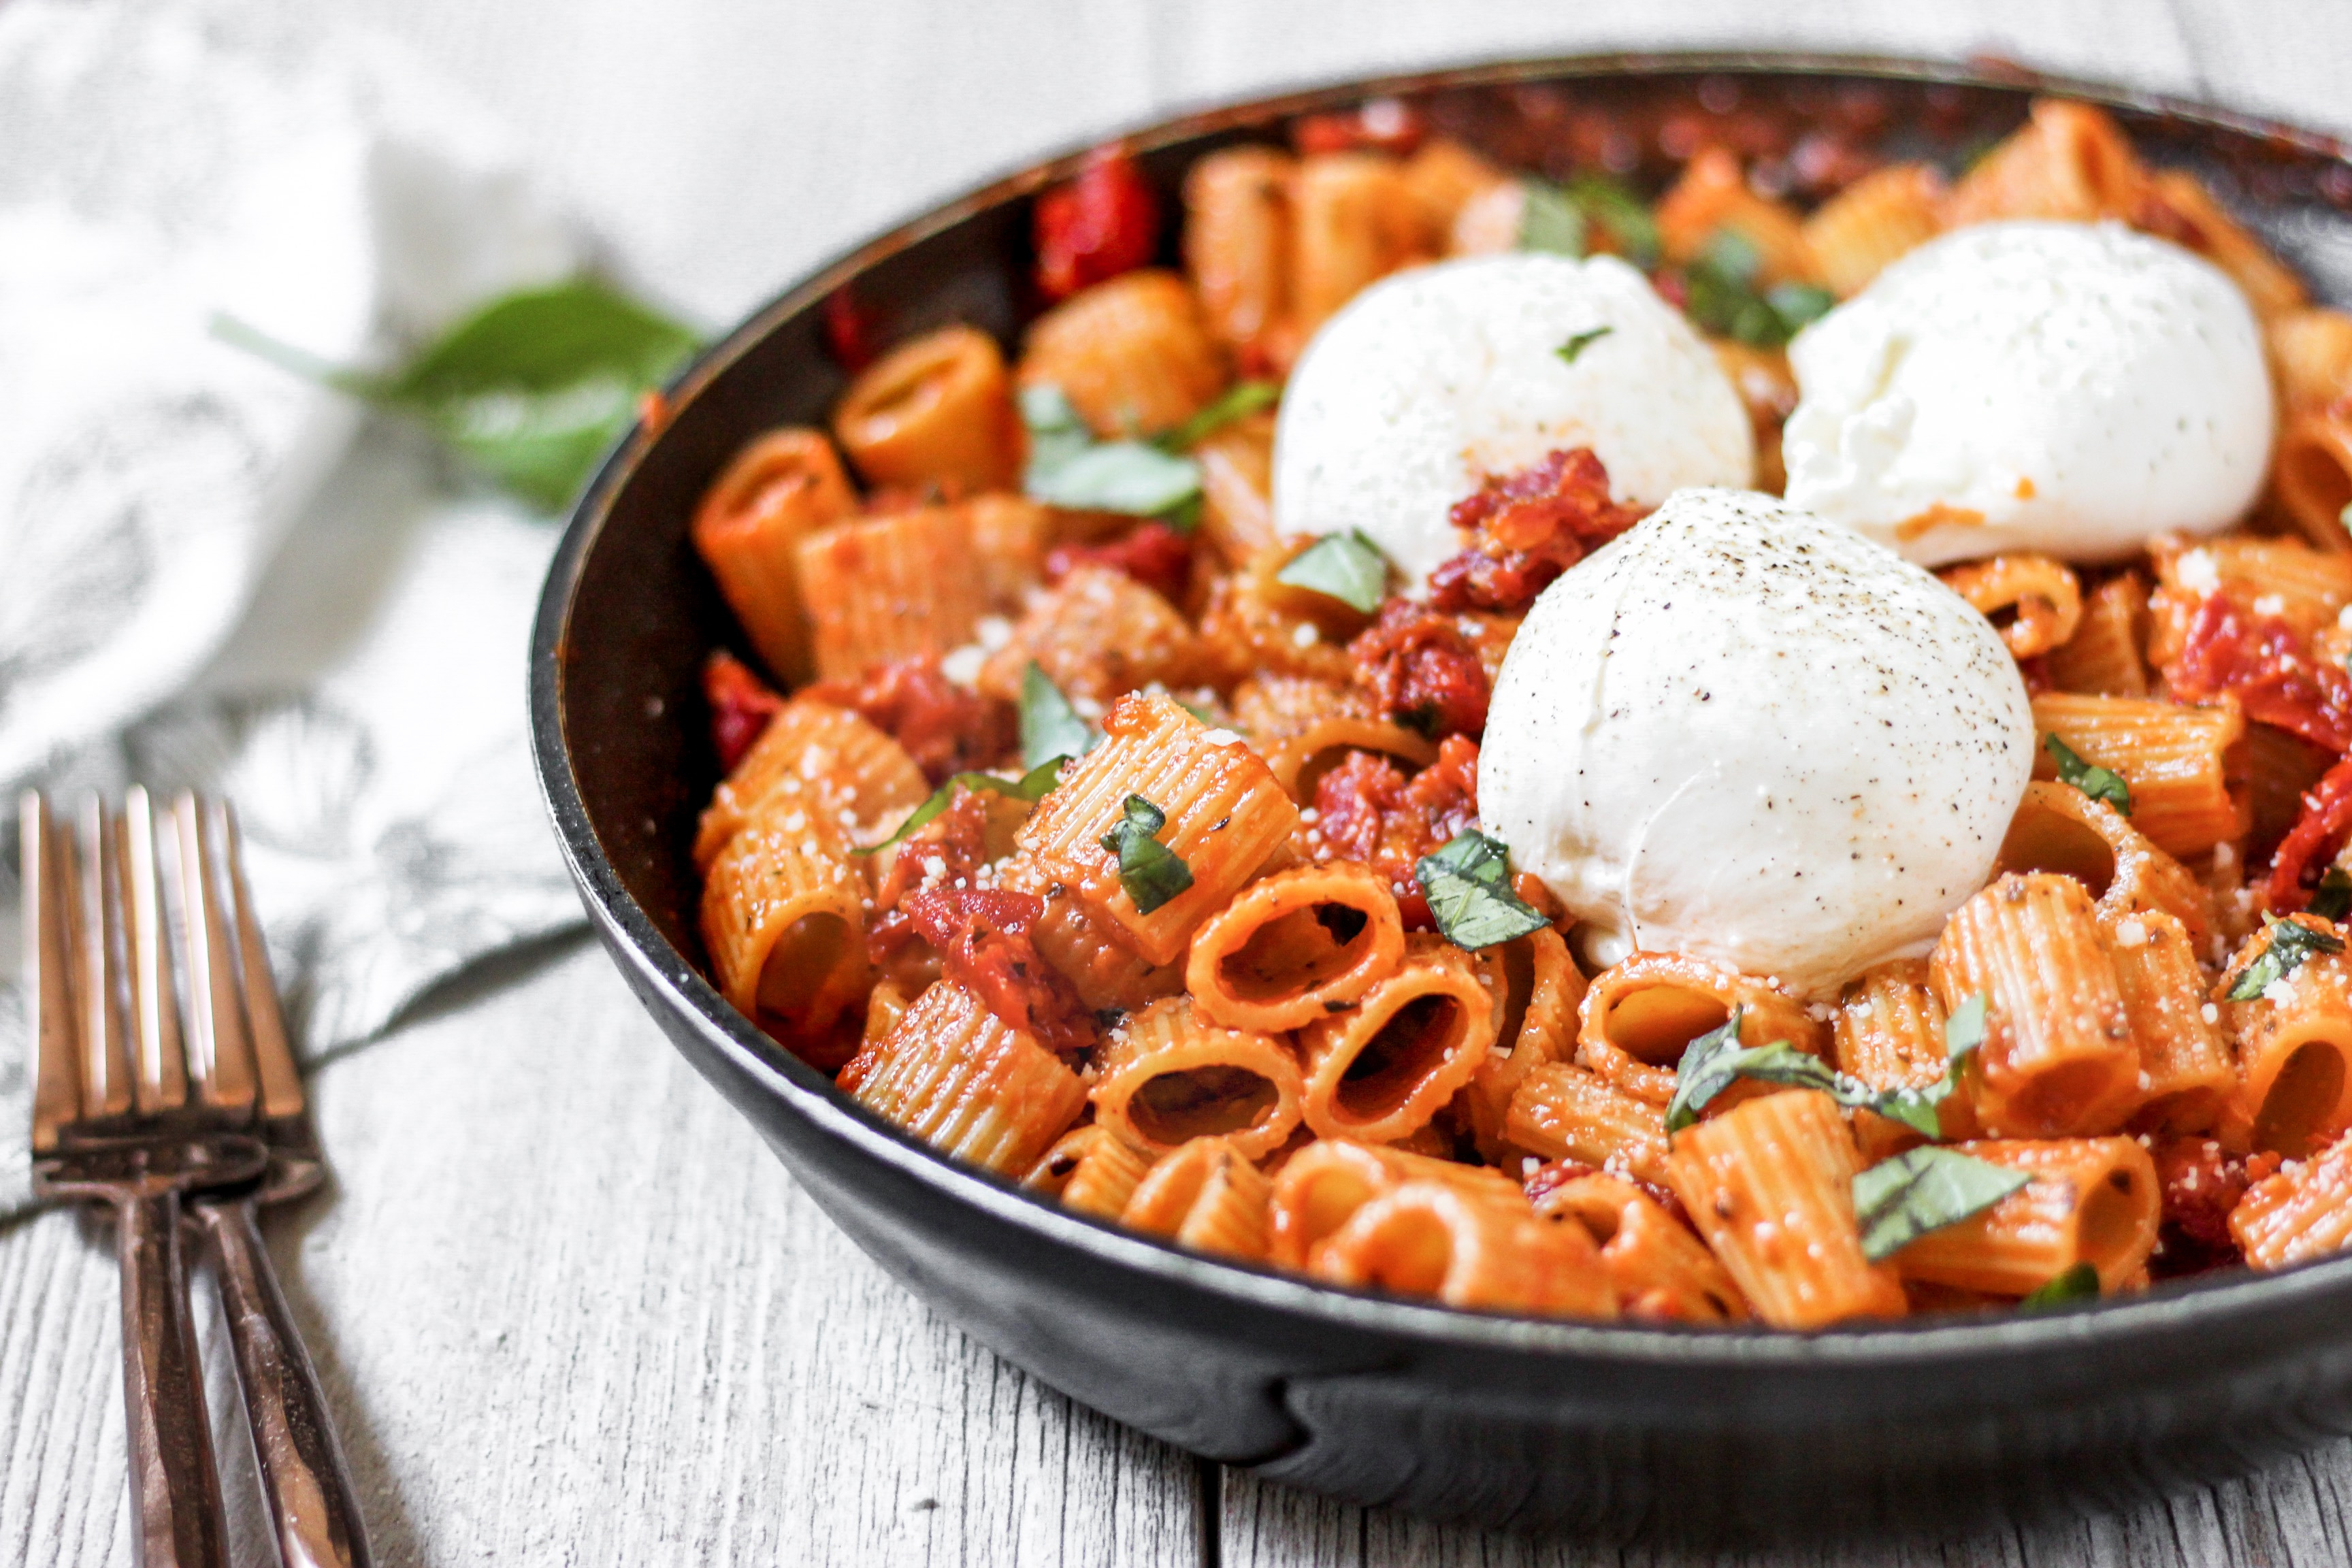 pasta in the pan with 3 balls of Burrata and 2 forks.